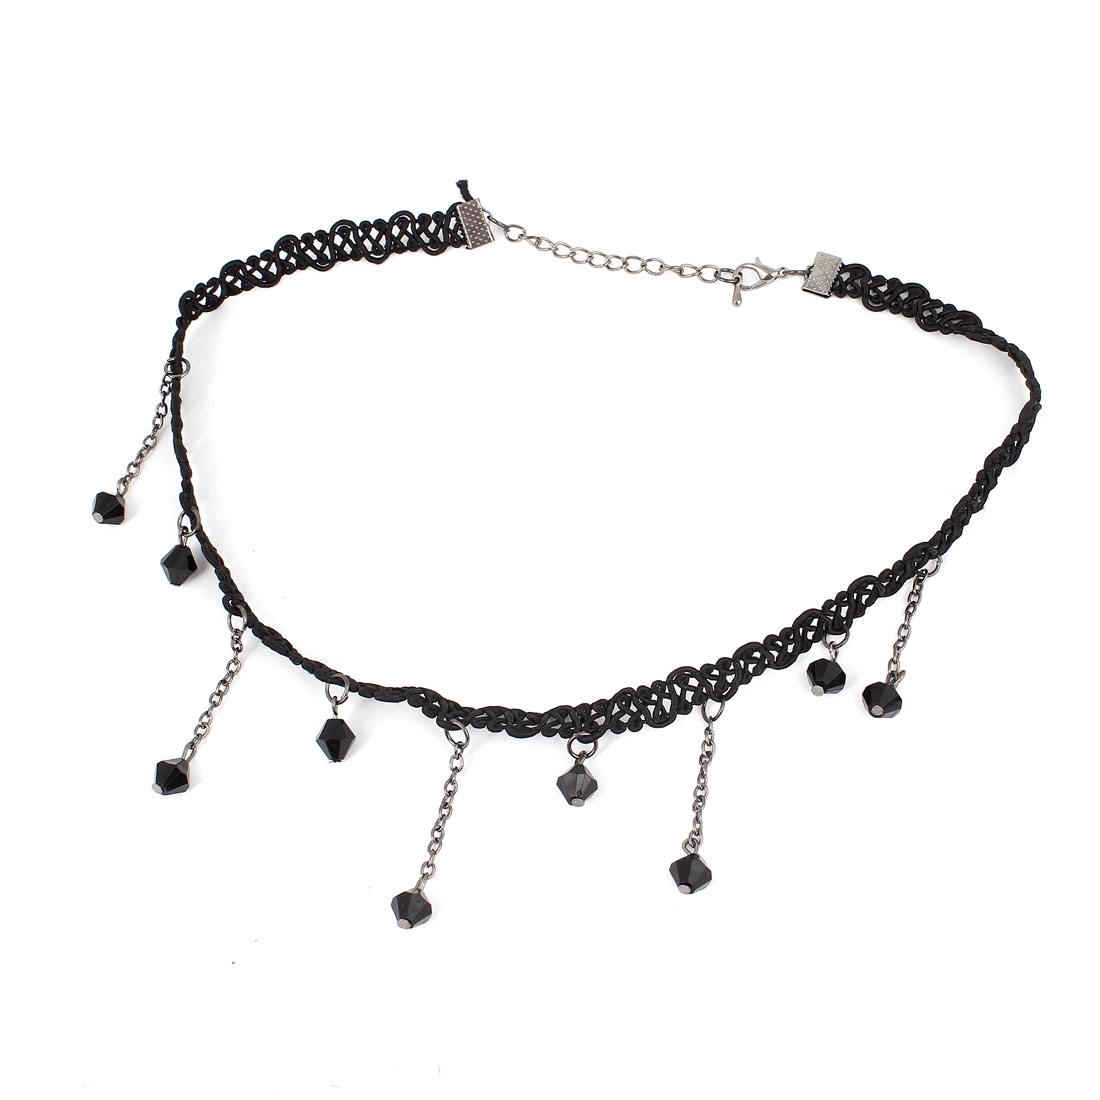 Unique Bargains Banquet Party Dangling Faceted Beads Pendant Weaved Nylon Choker Necklace Black